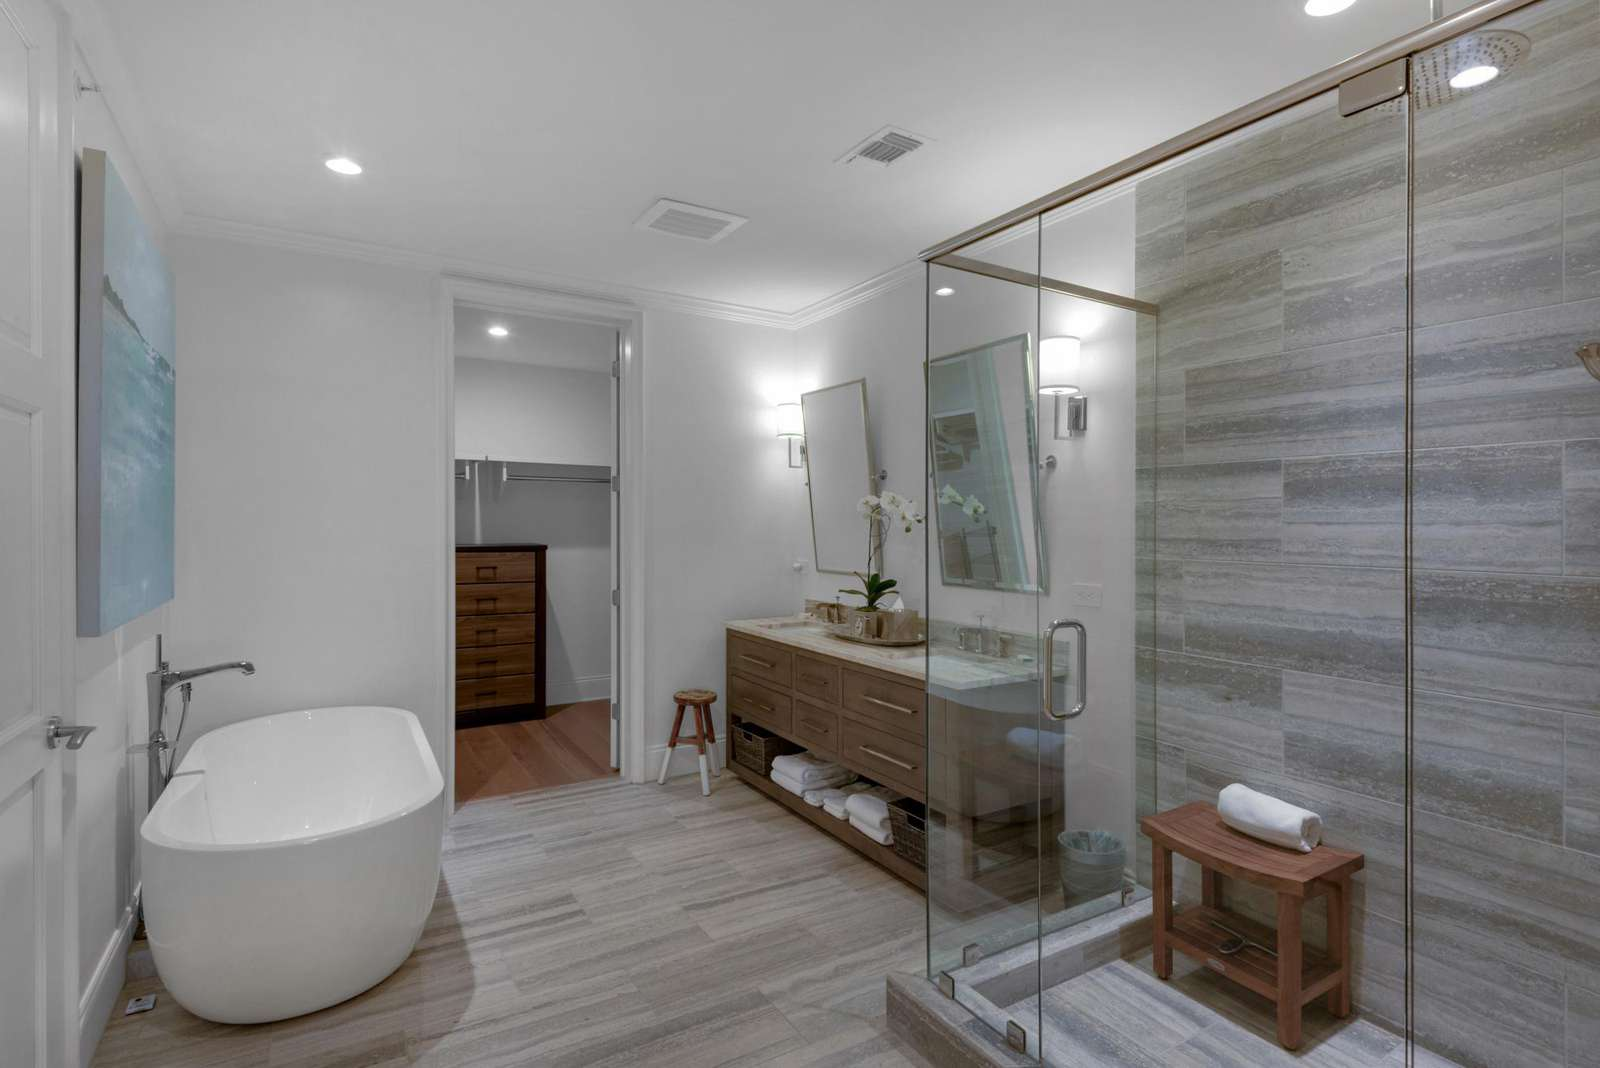 Master ensuite-double vanity sinks-soaking tub-larger walk-in shower